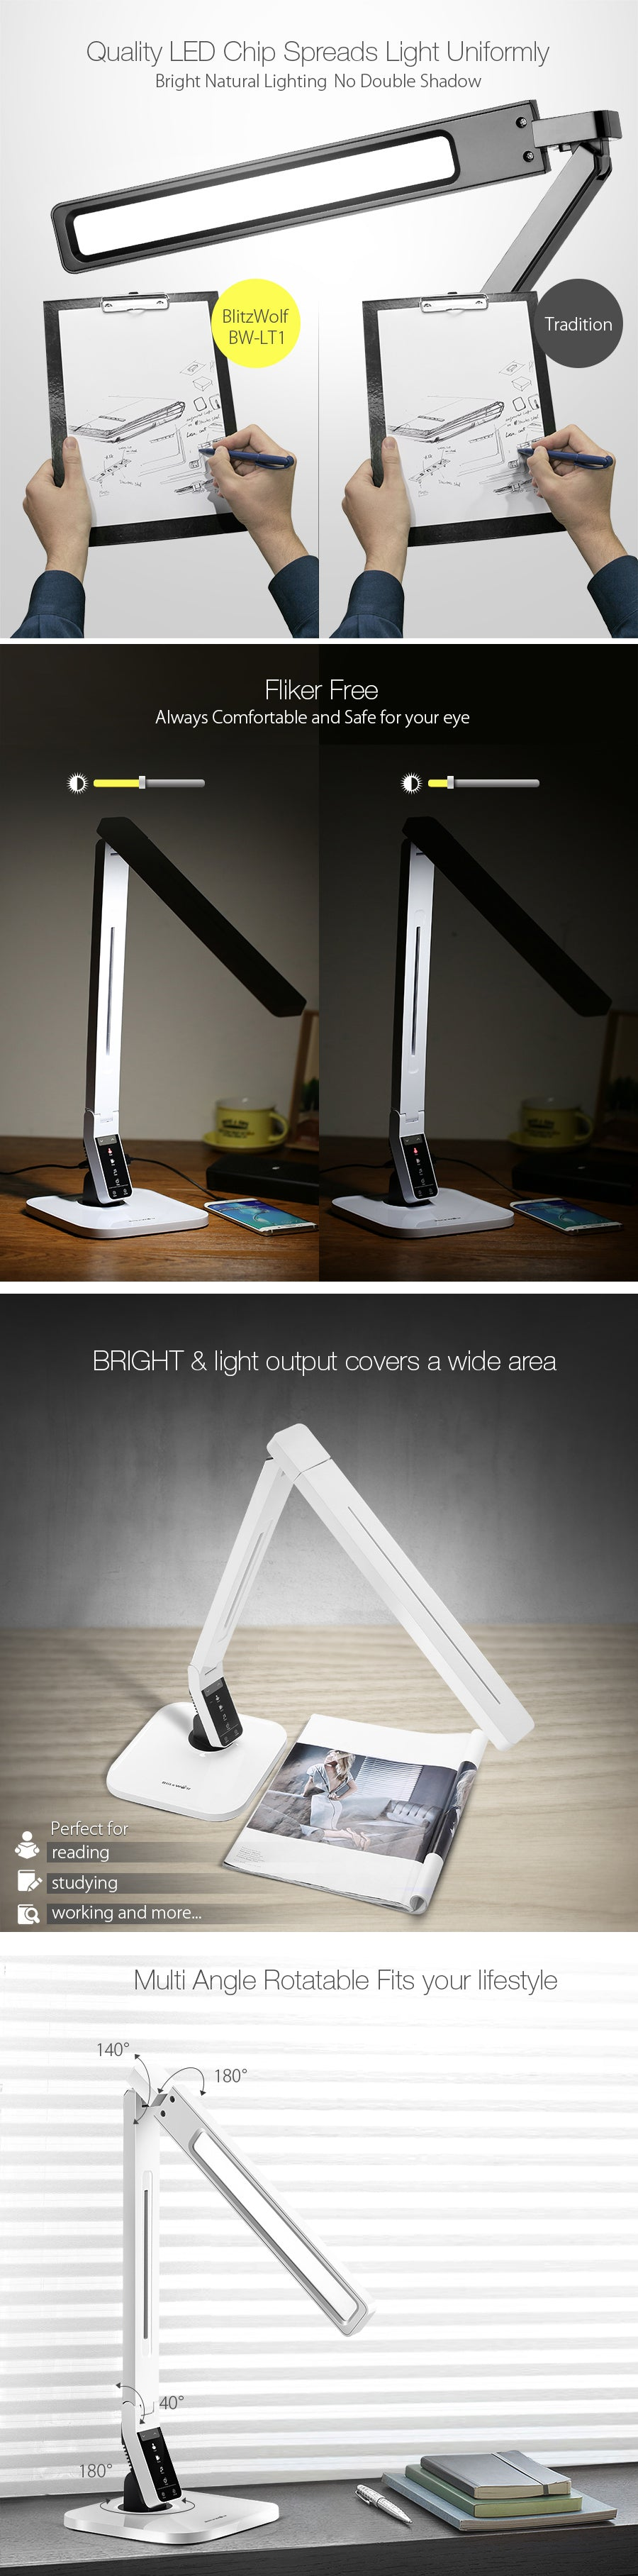 BlitzWolf® BW-LT1 Eye Protection Smart LED Dimmable Desk Lamp Light 2.1A USB Charging